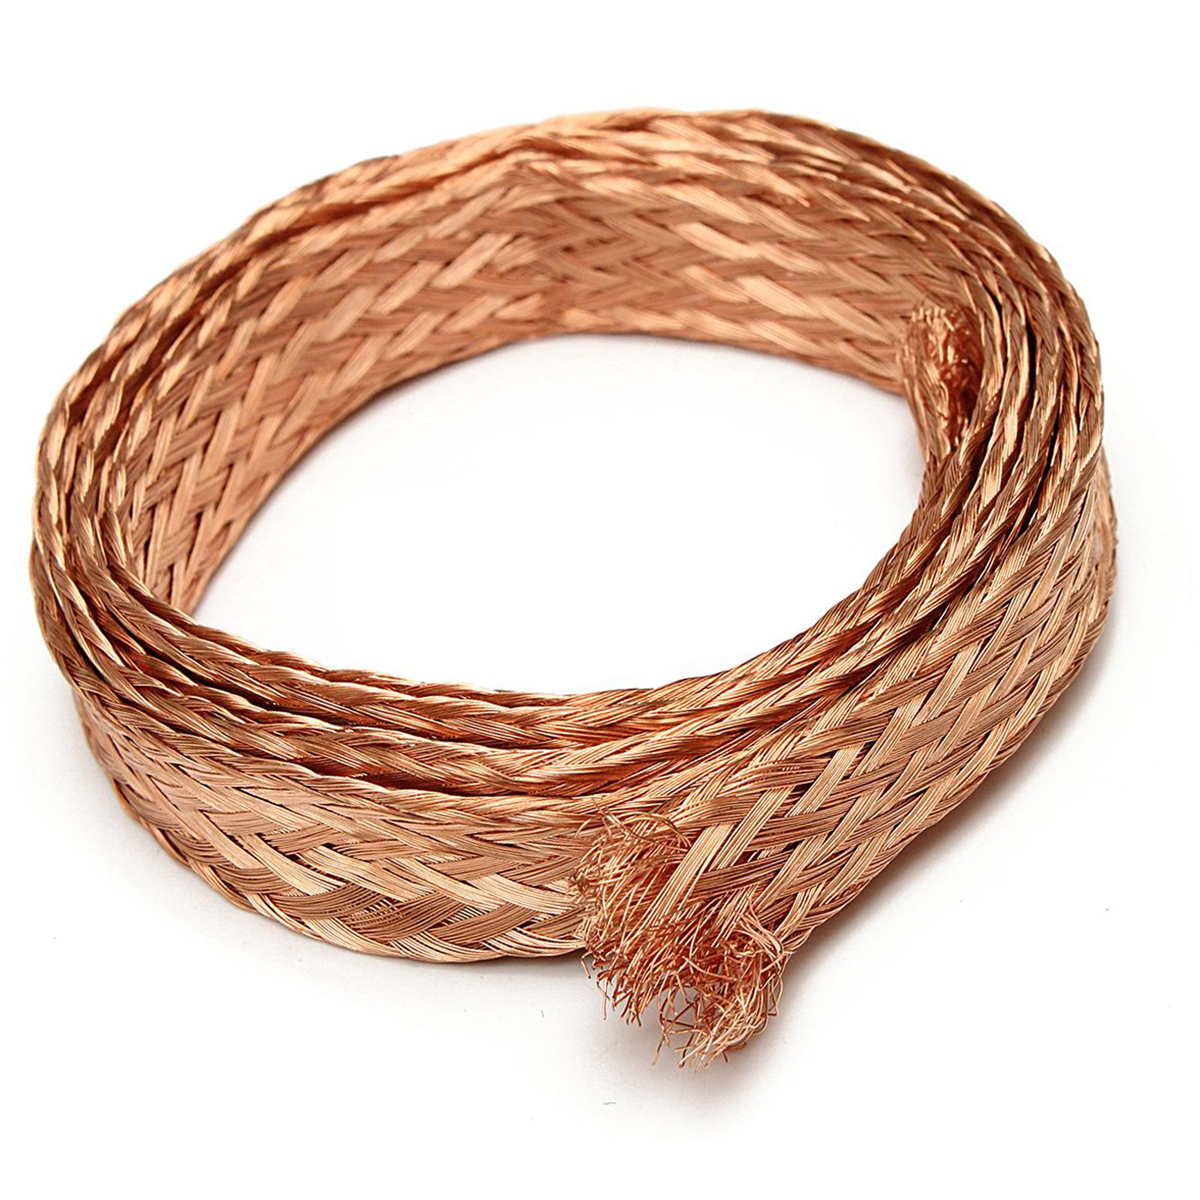 1m 3.3ft 6mm Pure Copper Braid Cable Flat Bare Copper Wire Ground Lead with High Flexibility 1m 15mm flat tinned copper braid sleeve screening tubular cable diy